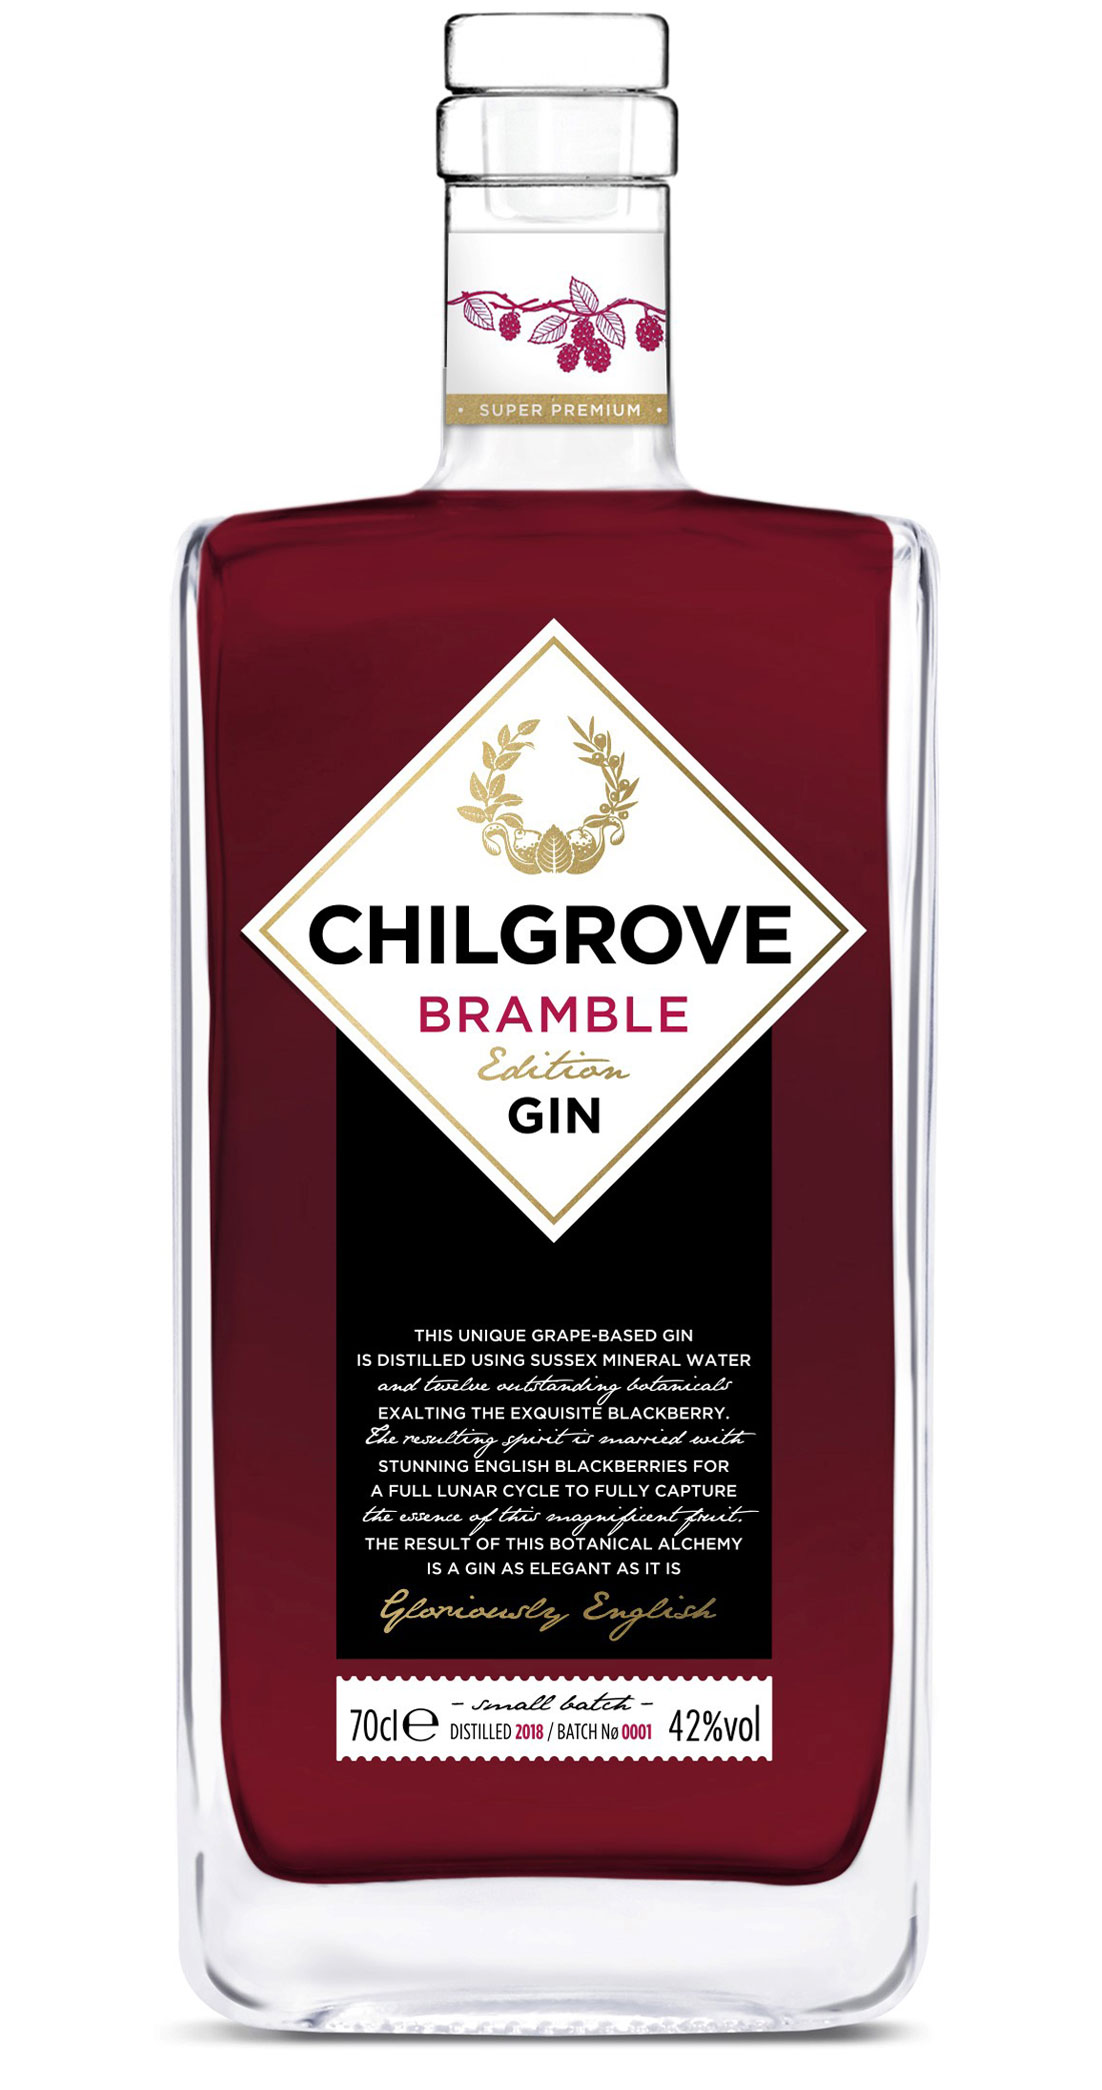 Chilgrove Bramble Gin